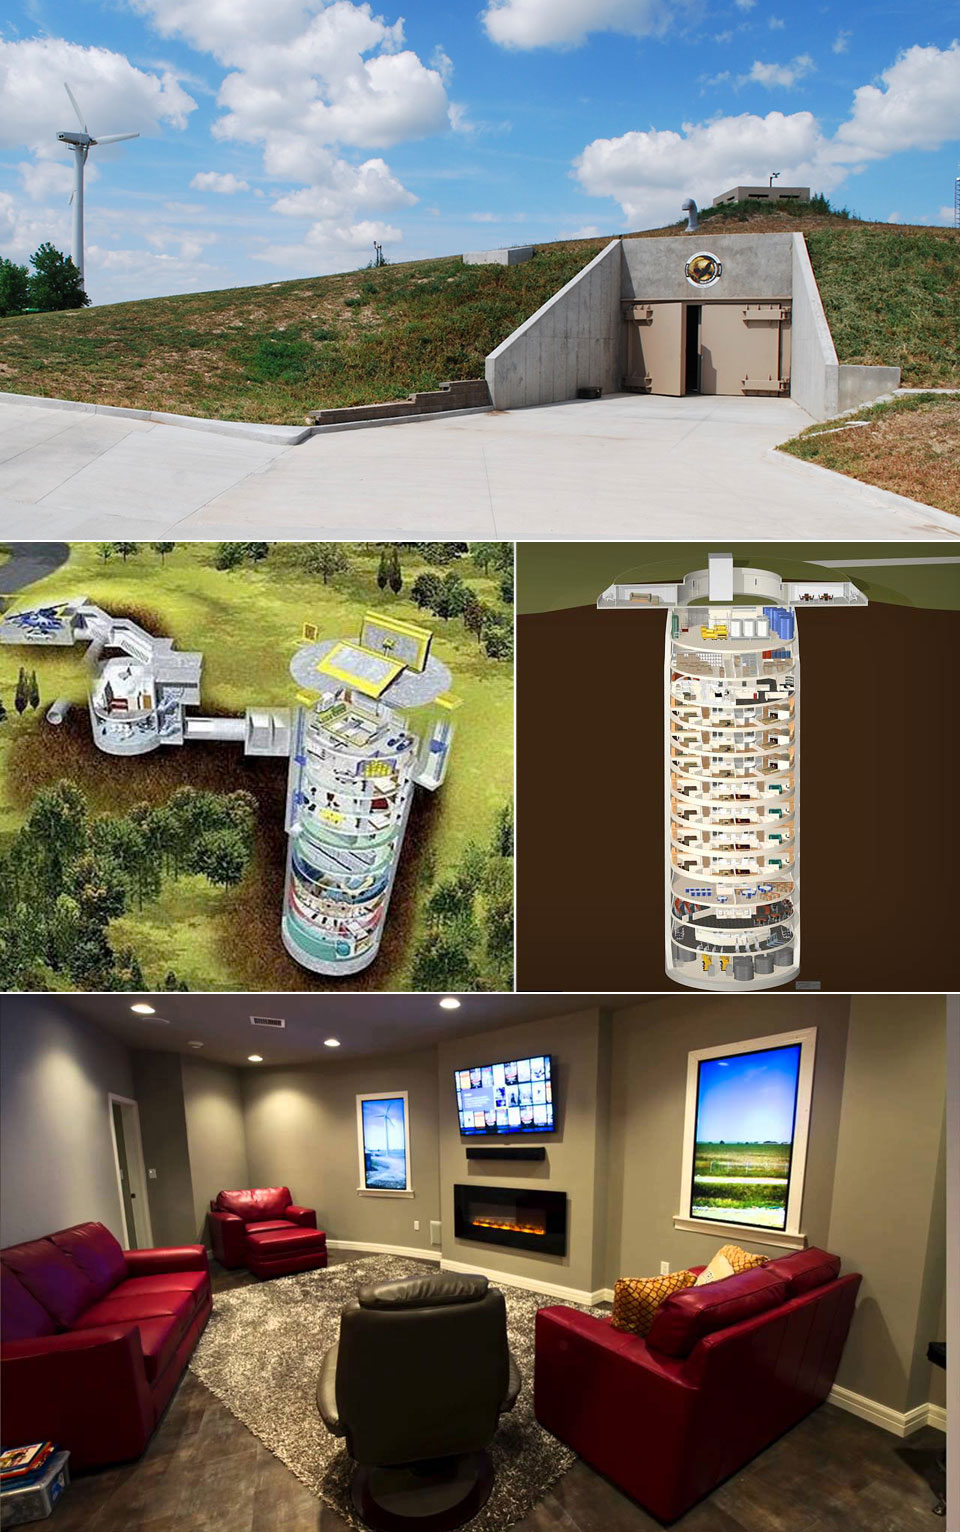 Survival Condo Doomsday Bunker